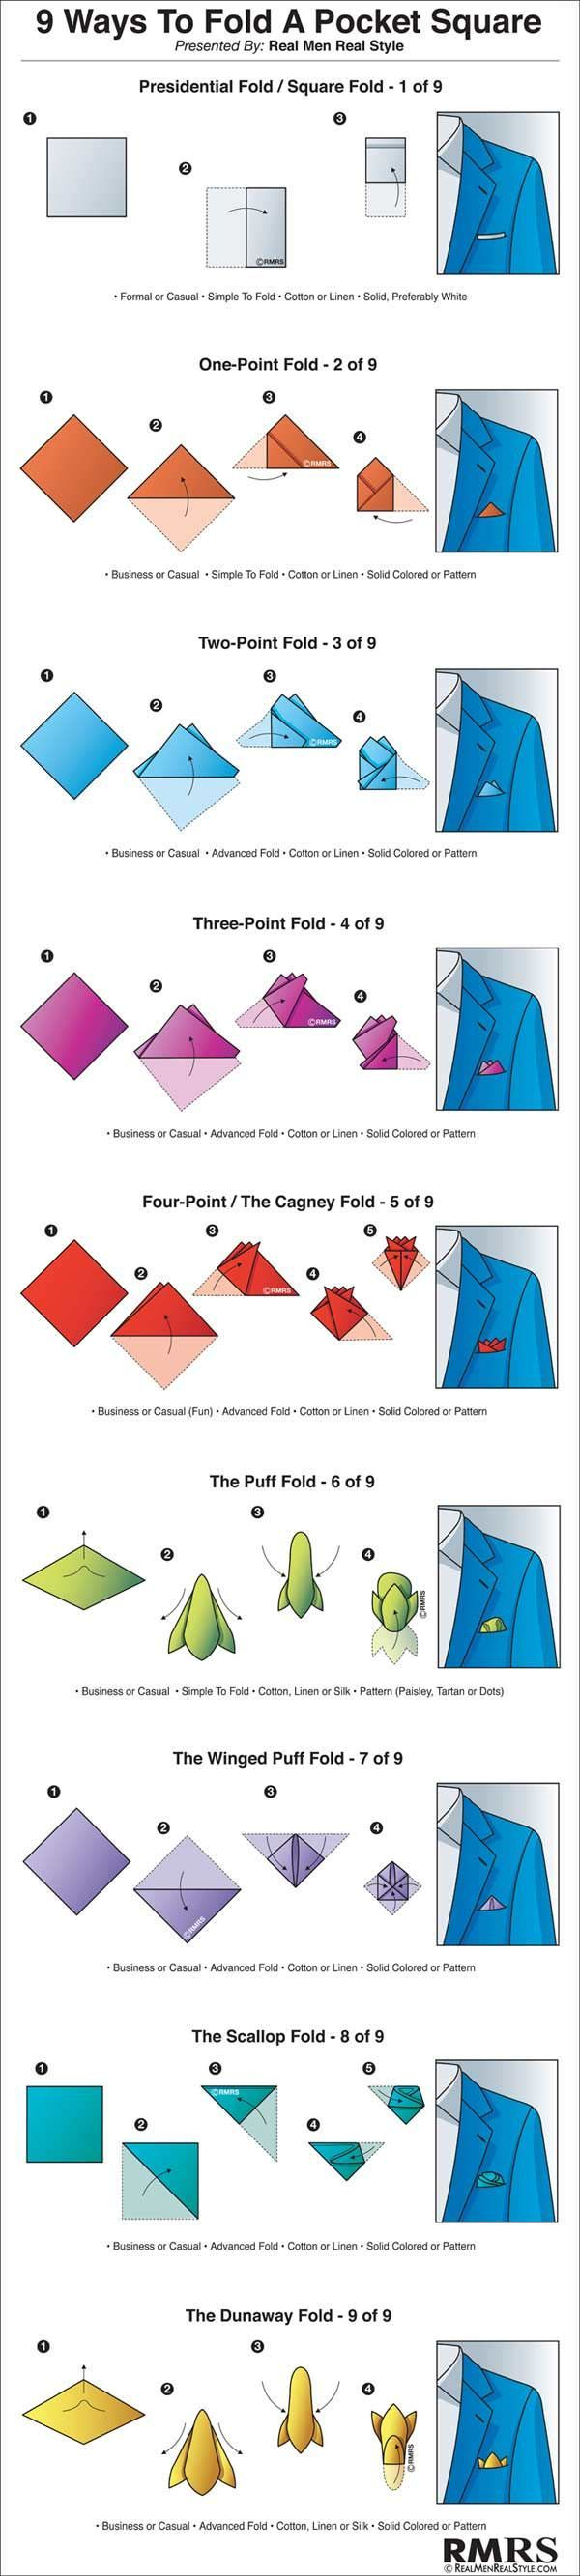 how to fold a pocket square, 9 ways to fold a pocket square infographic